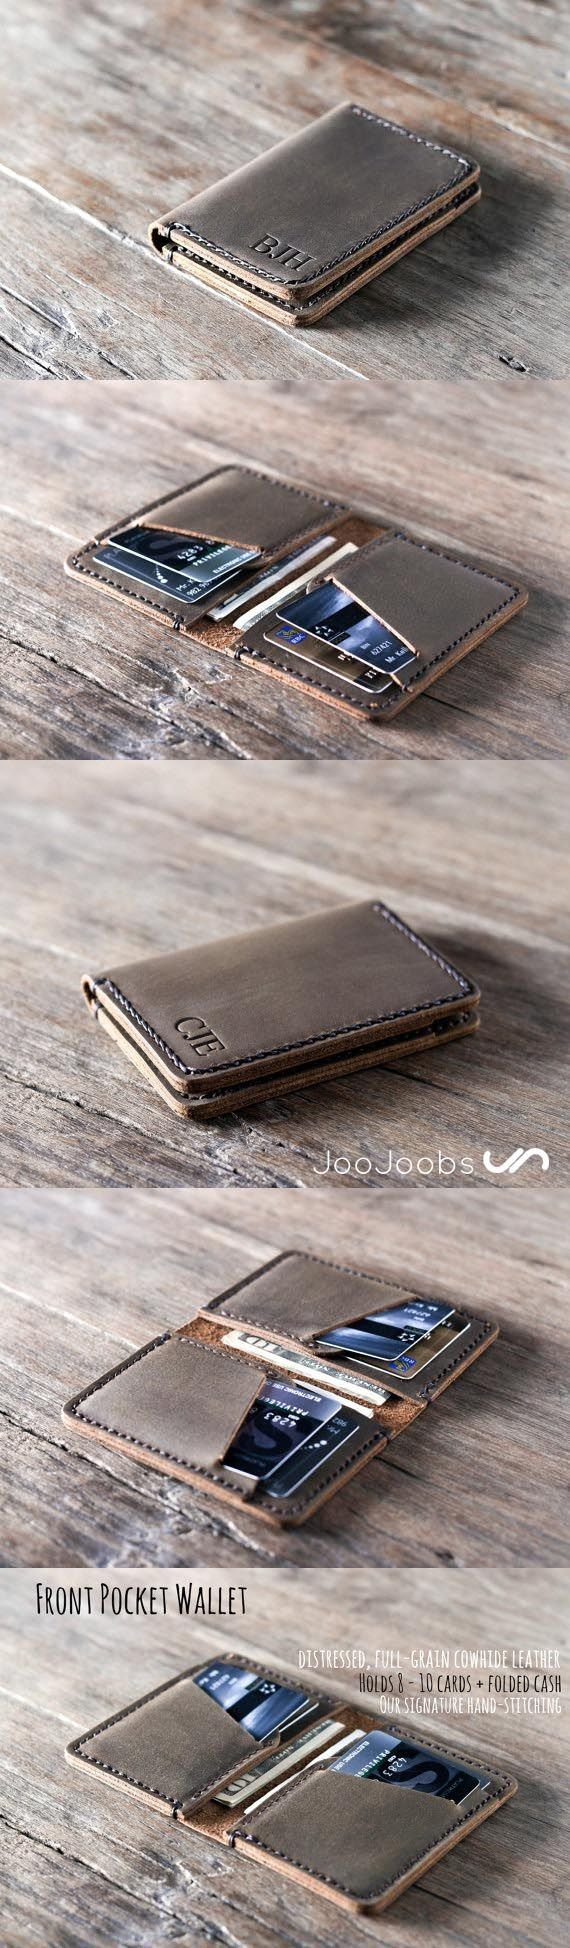 Wallet, handmade, leather, perfection!!